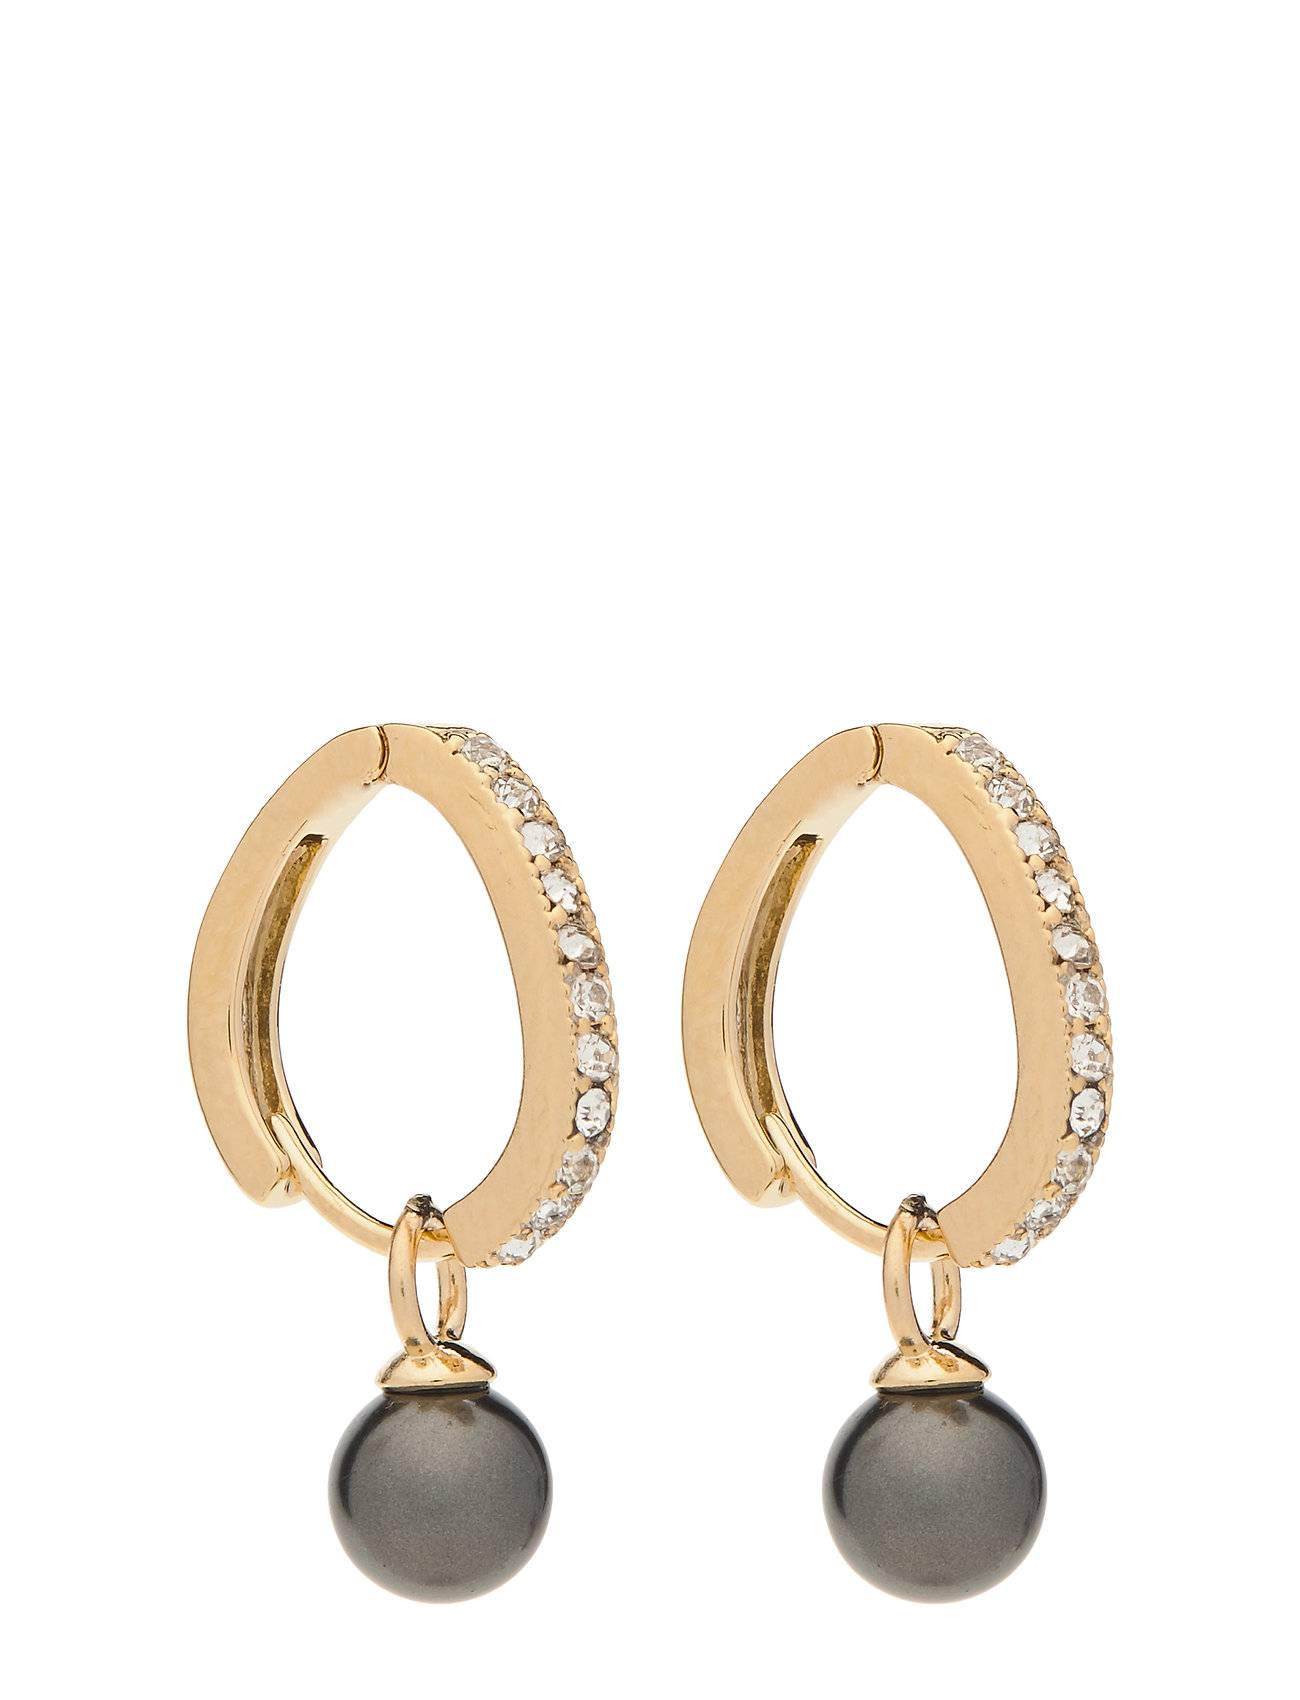 Image of LILY AND ROSE Petite Kennedy Hoops Earrings - Black Pearl Accessories Jewellery Earrings Hoops Kulta LILY AND ROSE